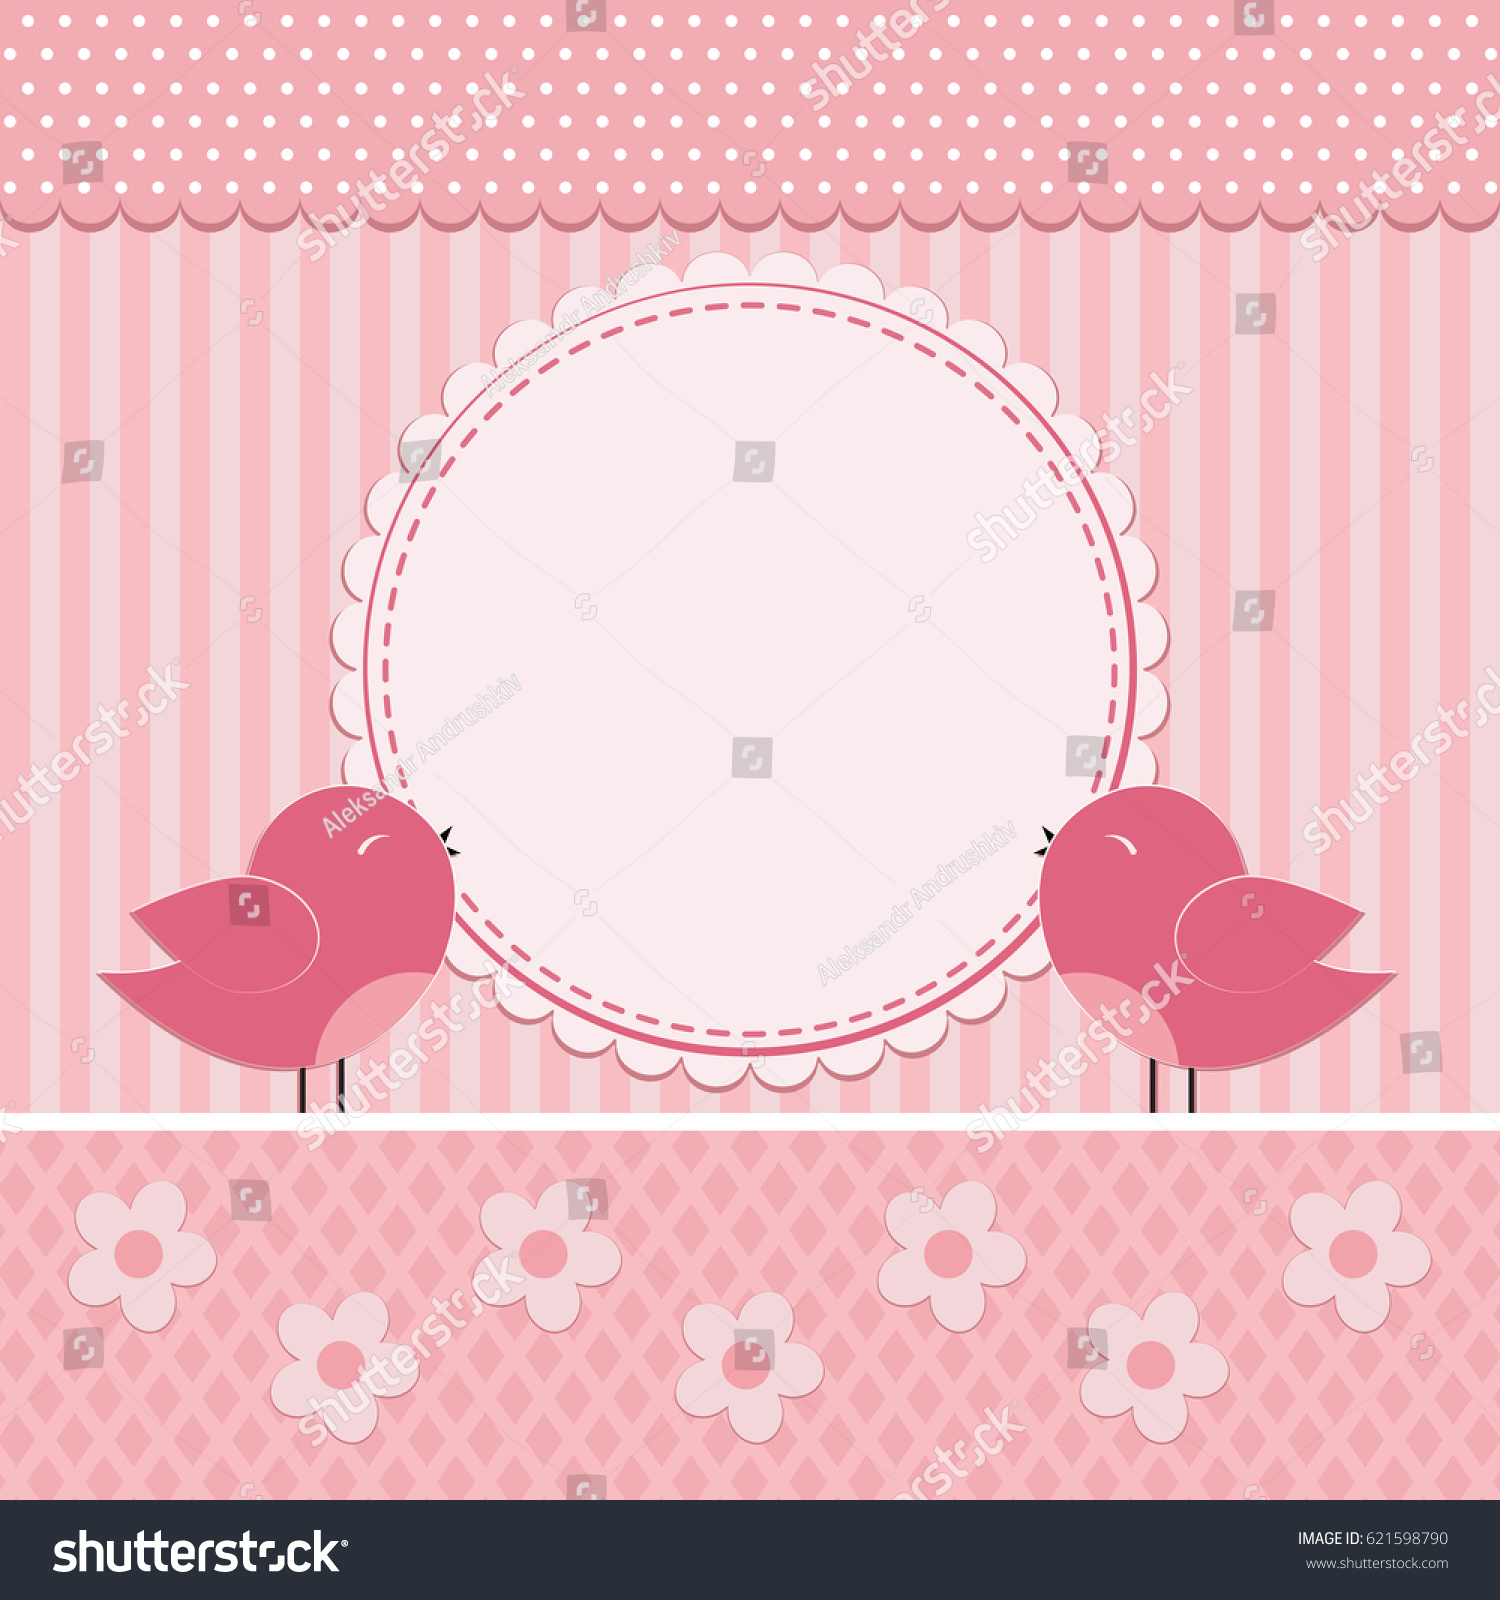 Greeting Card Cute Birds Cartoon Flowers Stock Vector 621598790